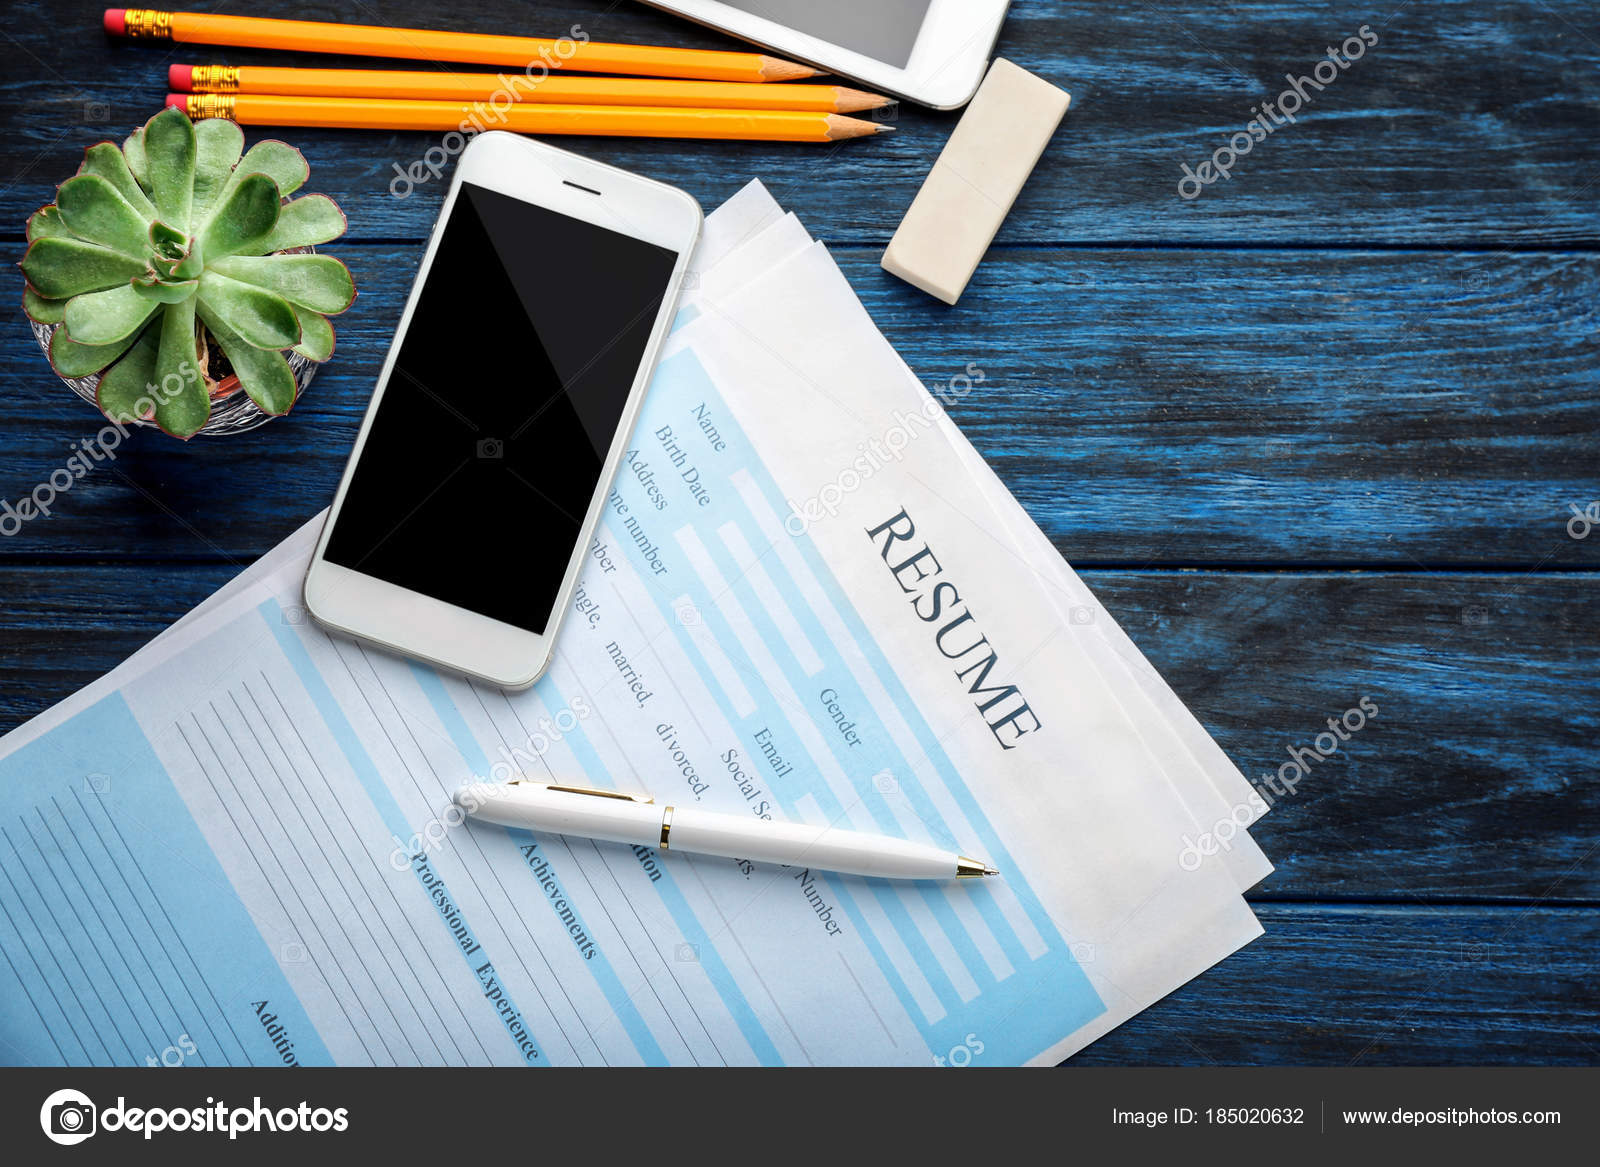 resume forms phone table job interview concept stock photo